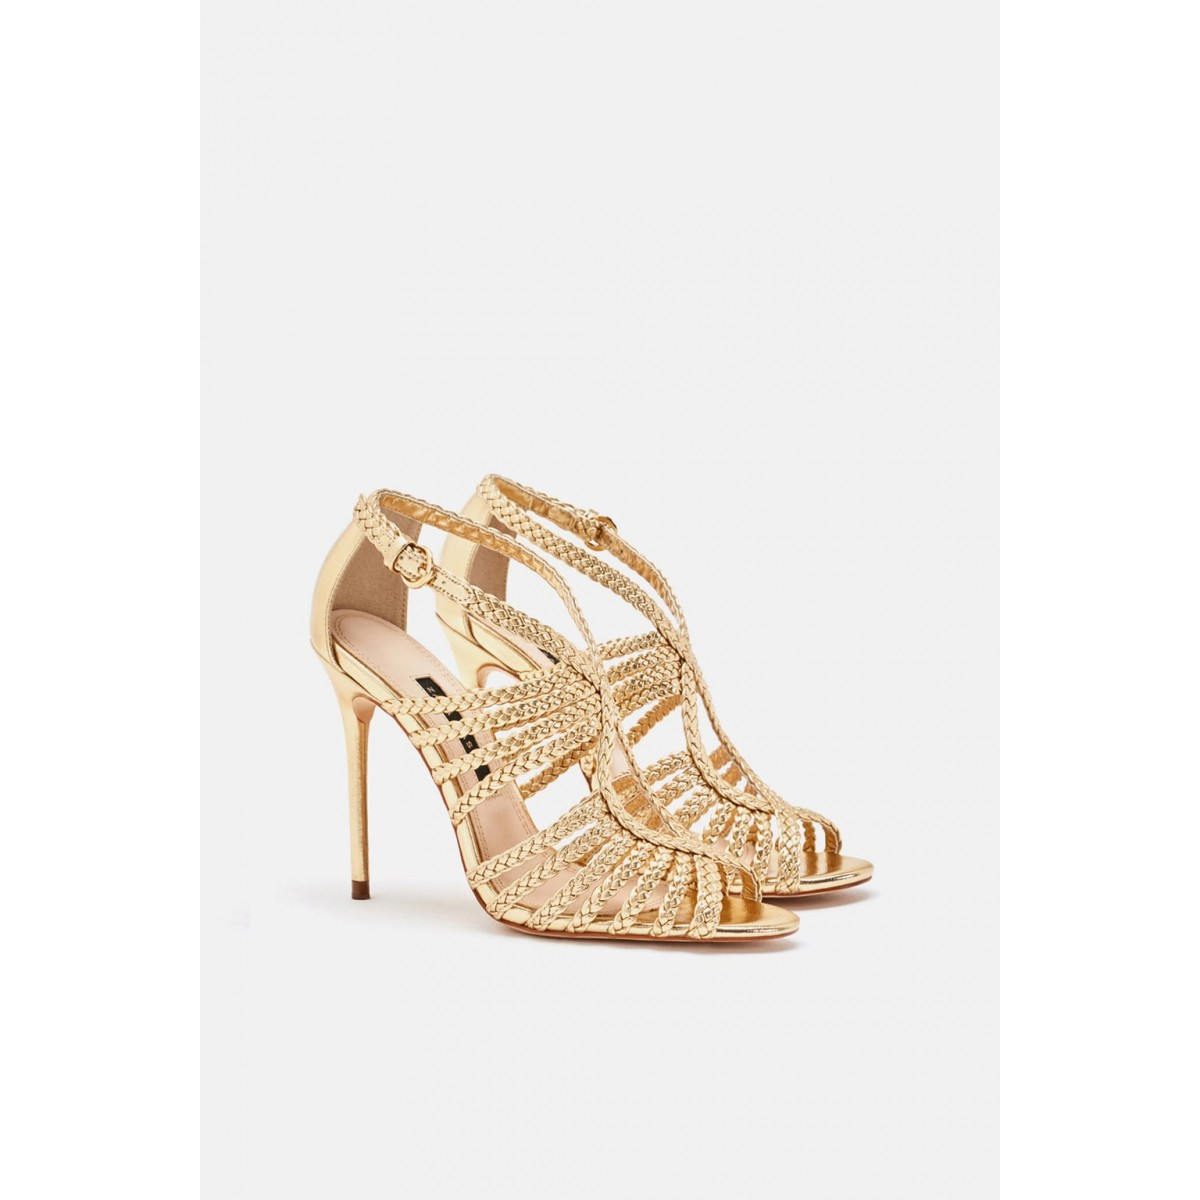 Zara Caged High-Heel Sandals With Braded Straps